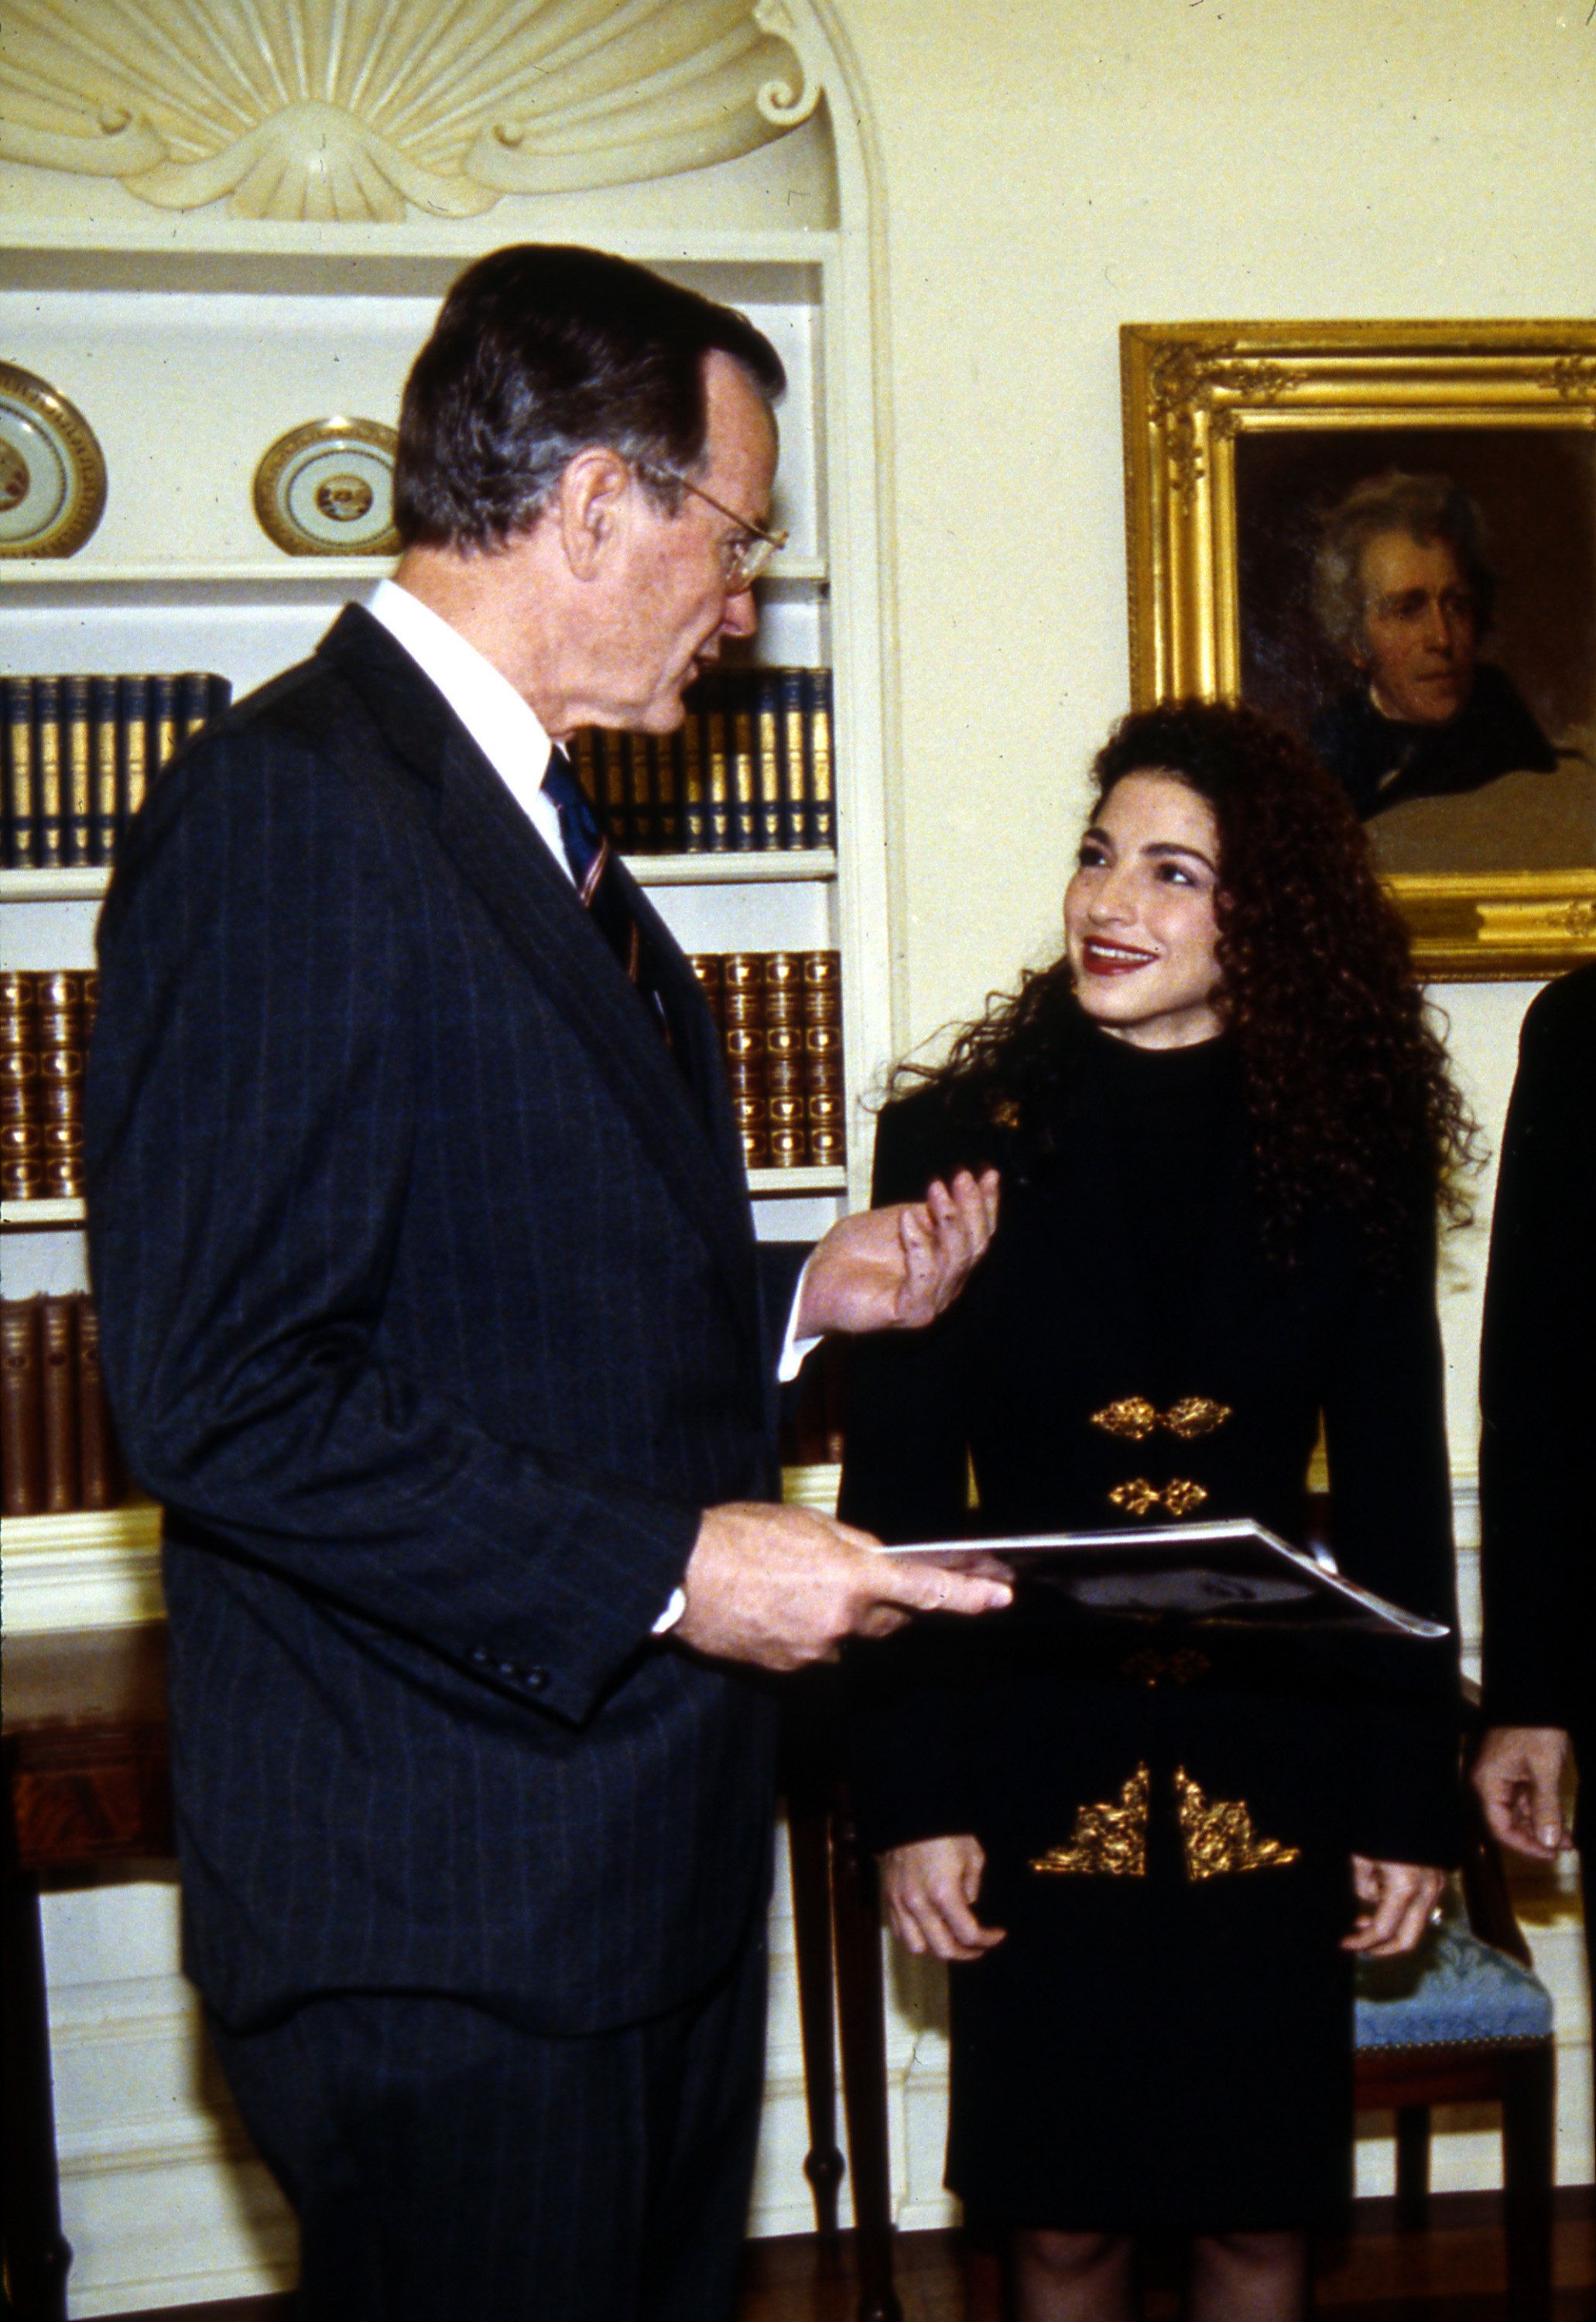 President George H.W. Bush with singer Gloria Estefan at the White House in 1990.